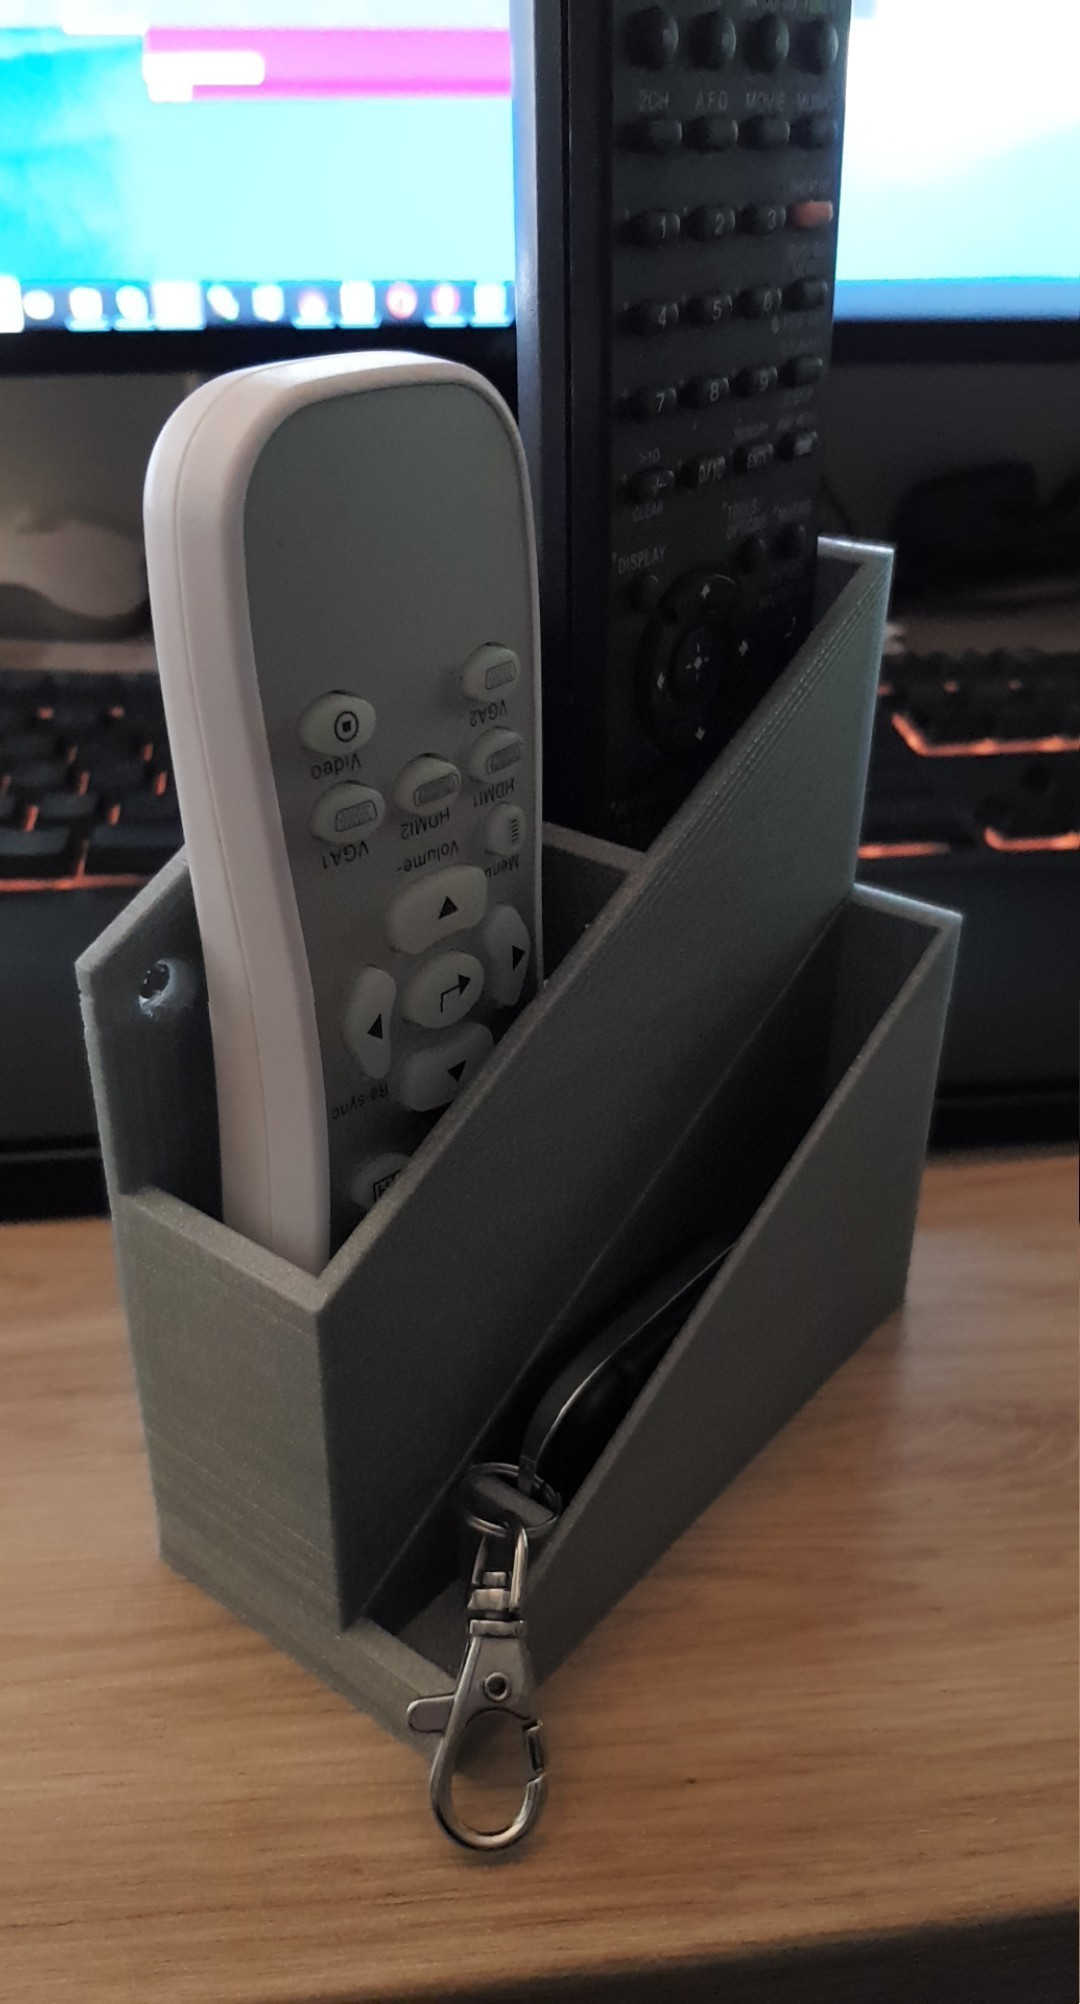 scv_15200220672861907076660.jpg Download free STL file wall mounted remote control • 3D printable template, MME